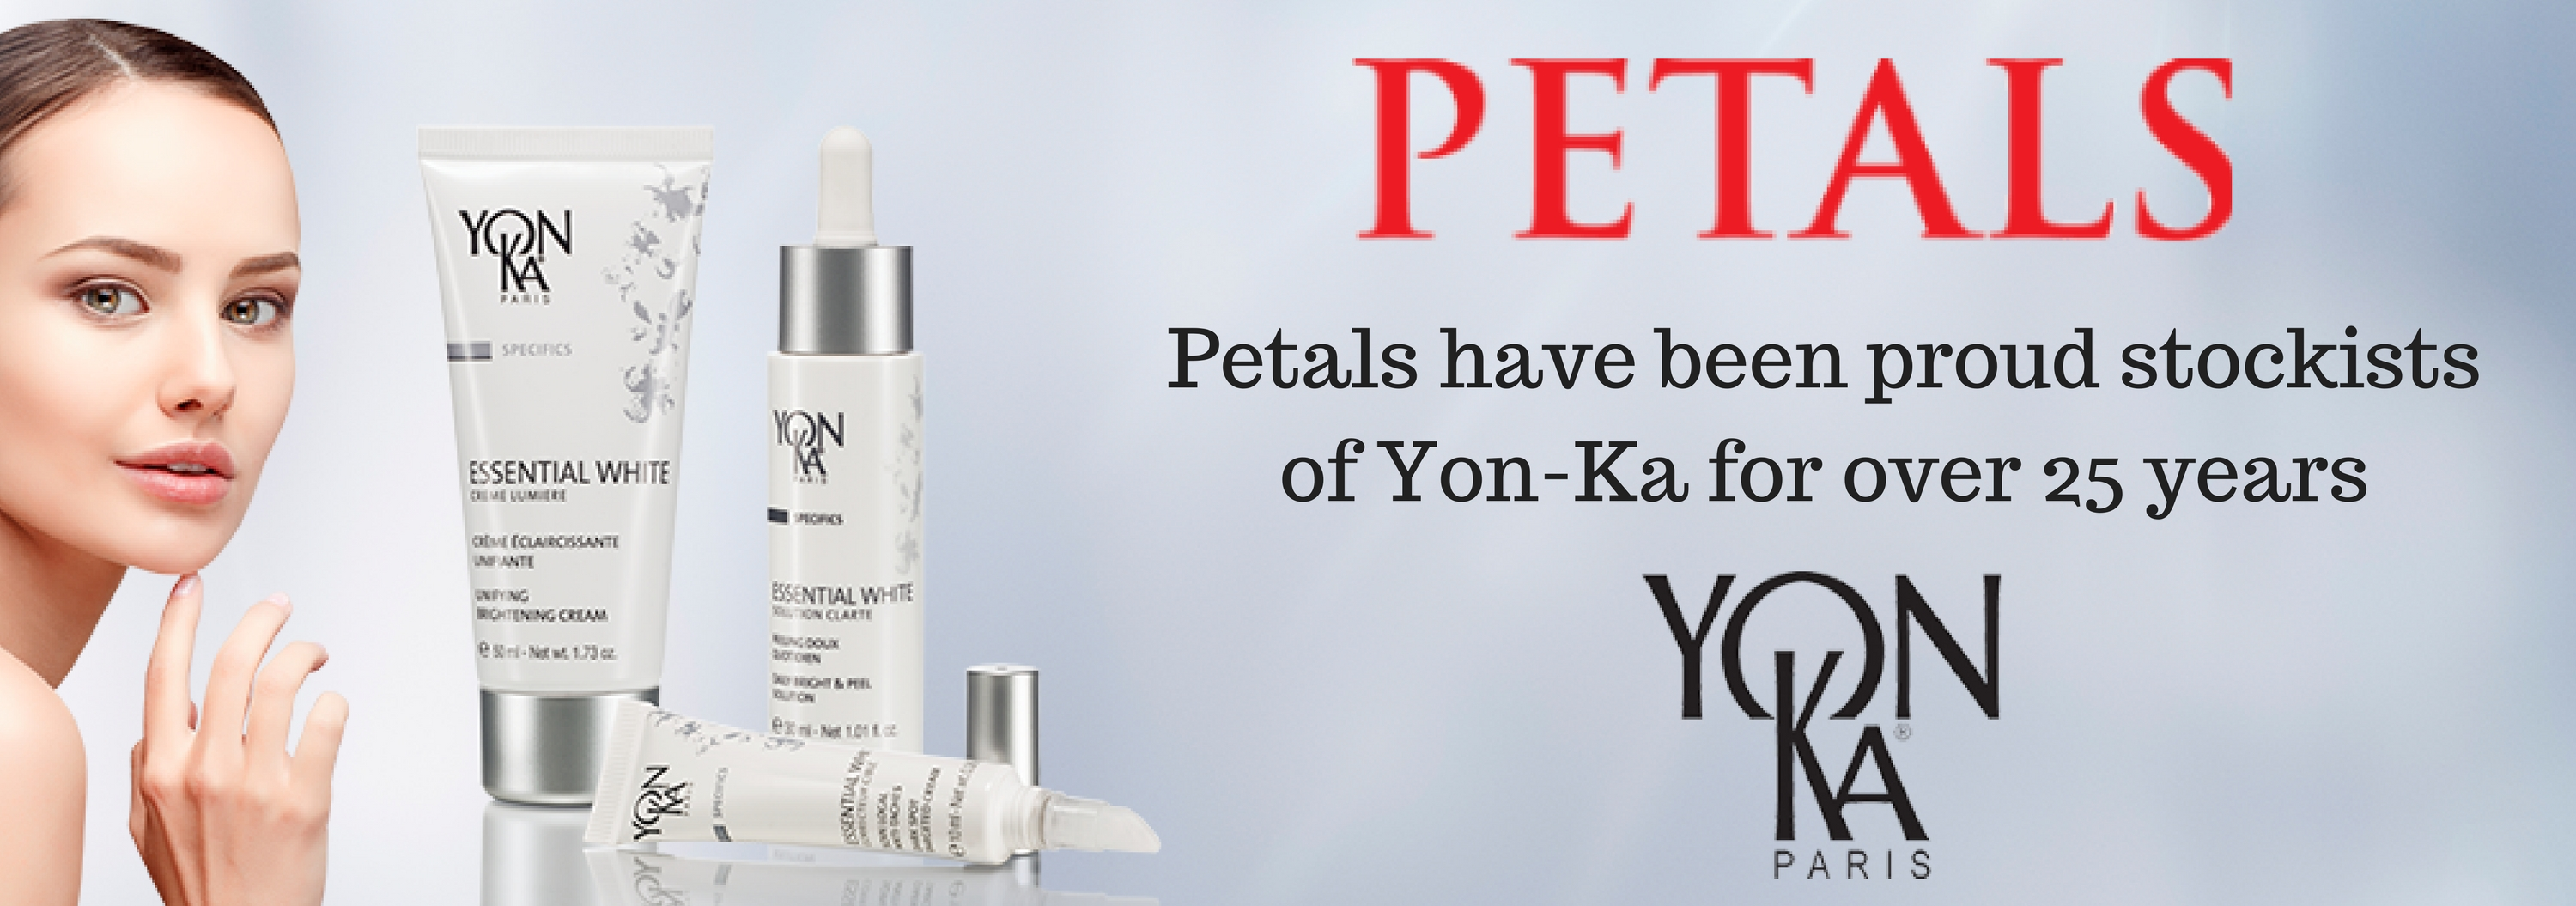 petals-have-been-proud-stockists-of-yon-ka-for-over-25-years.jpg